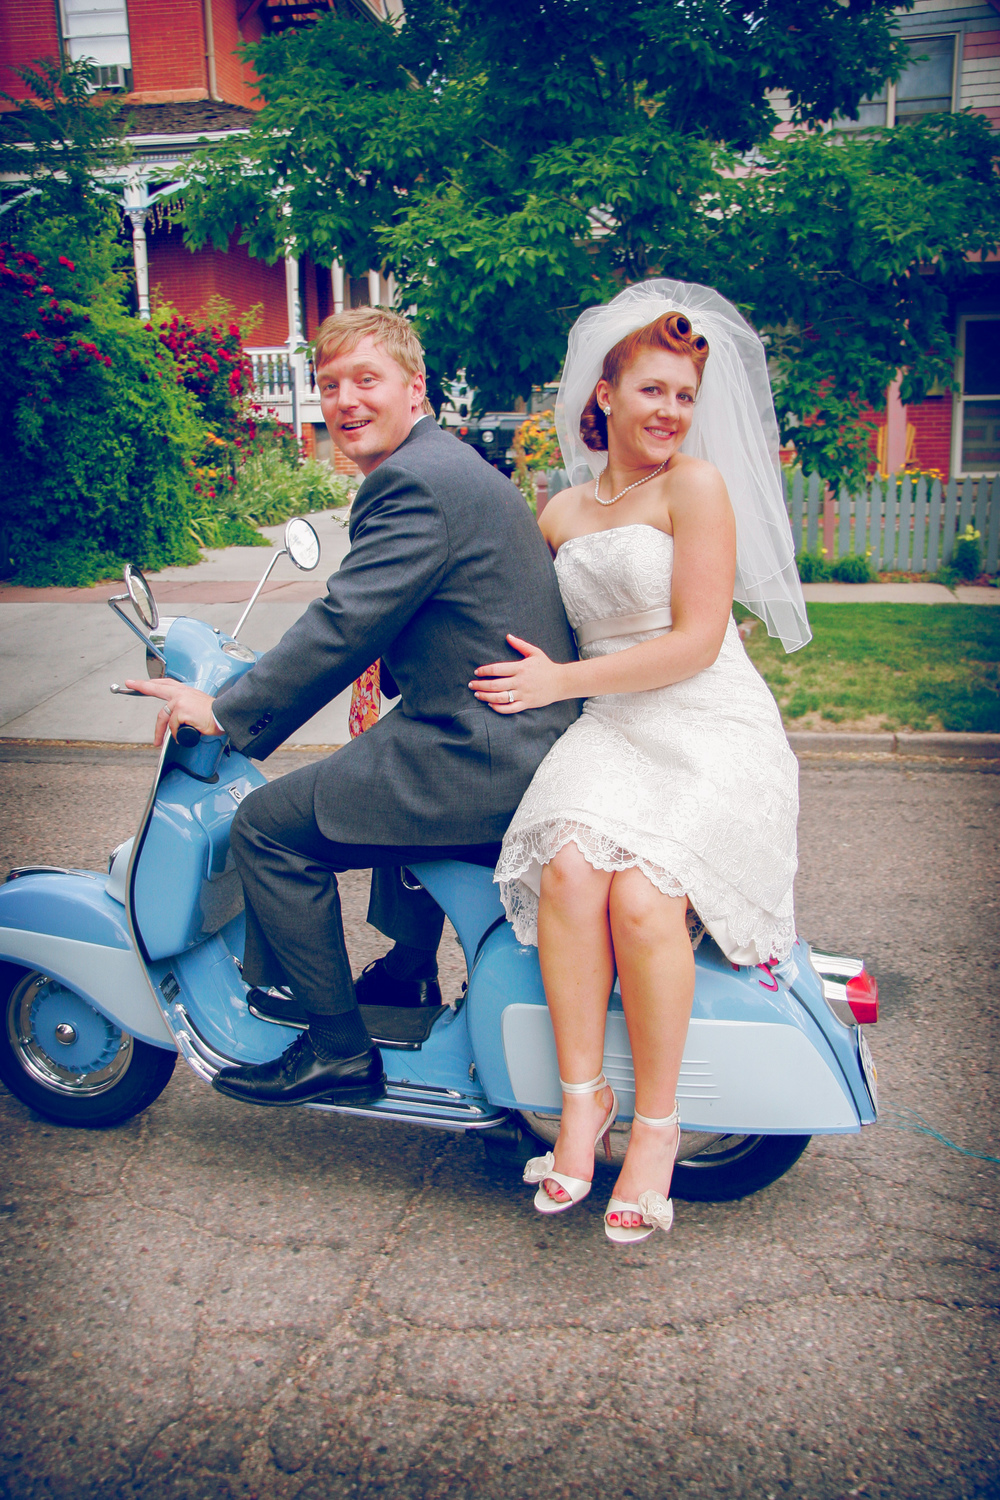 Highlands_Vespa_Denver_Wedding_032.JPG